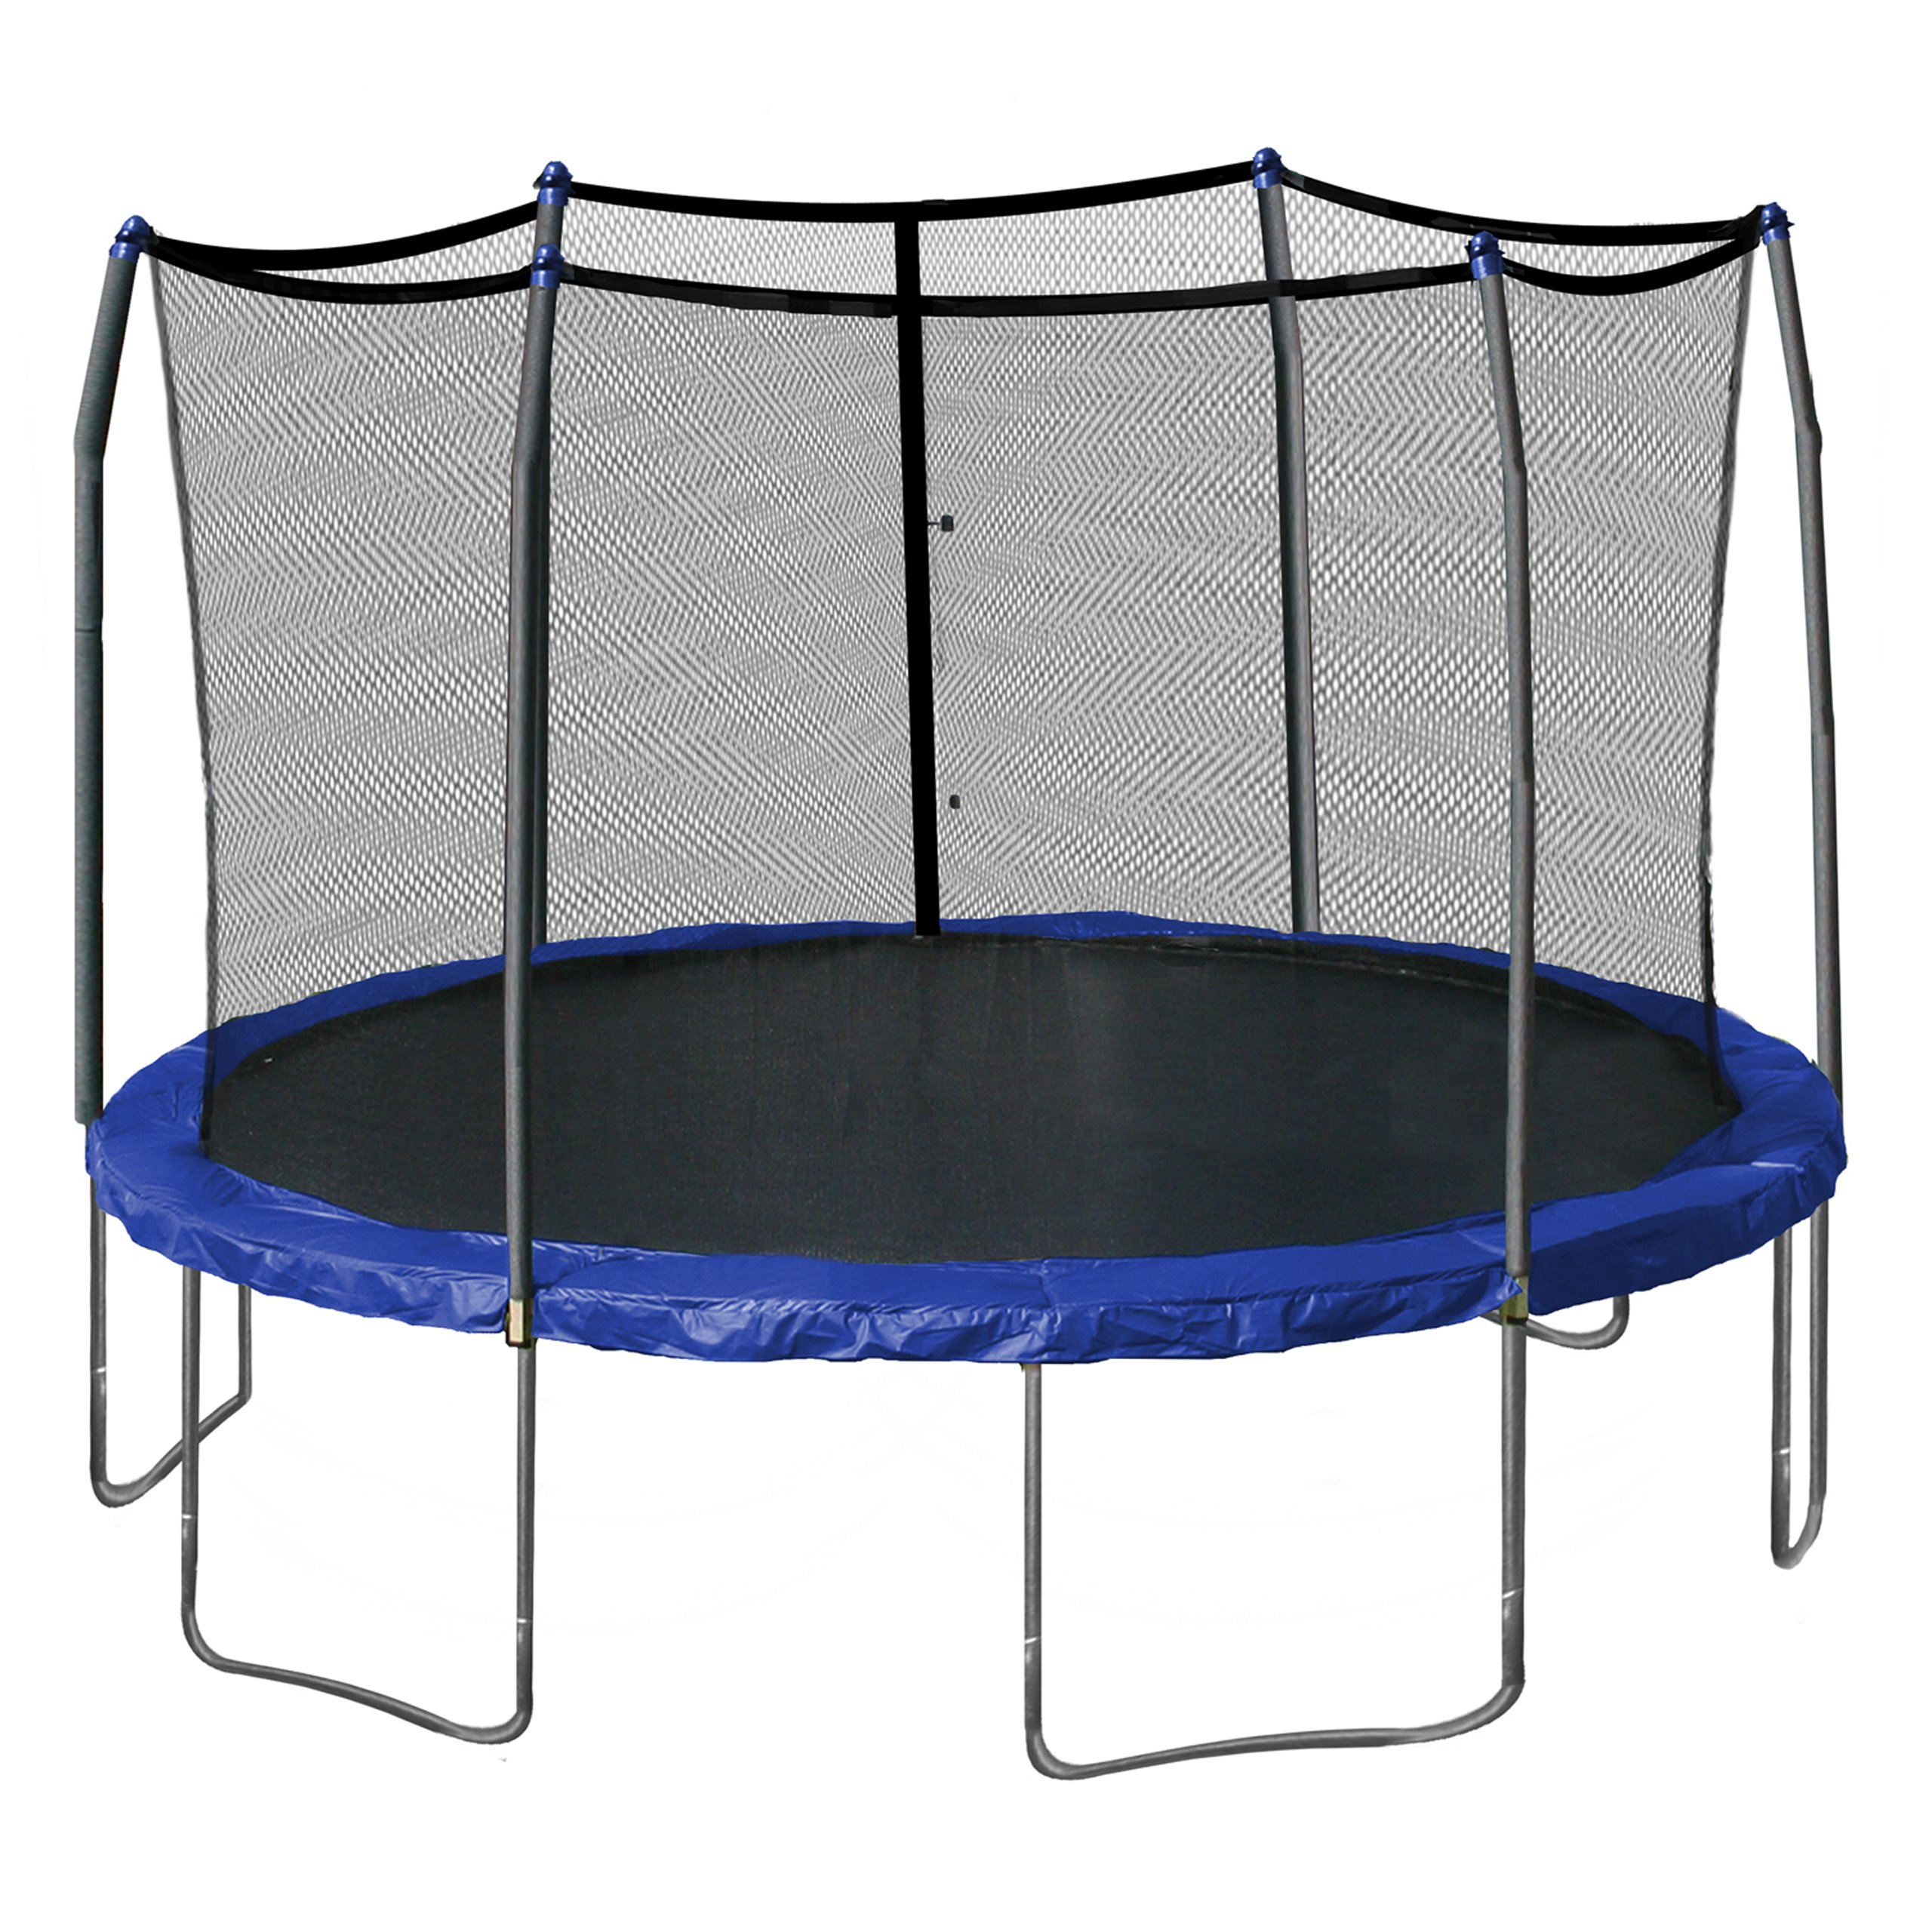 Skywalker Trampolines 15-Foot Round Trampoline and Enclosure with Spring Pad, Blue by Skywalker Trampolines